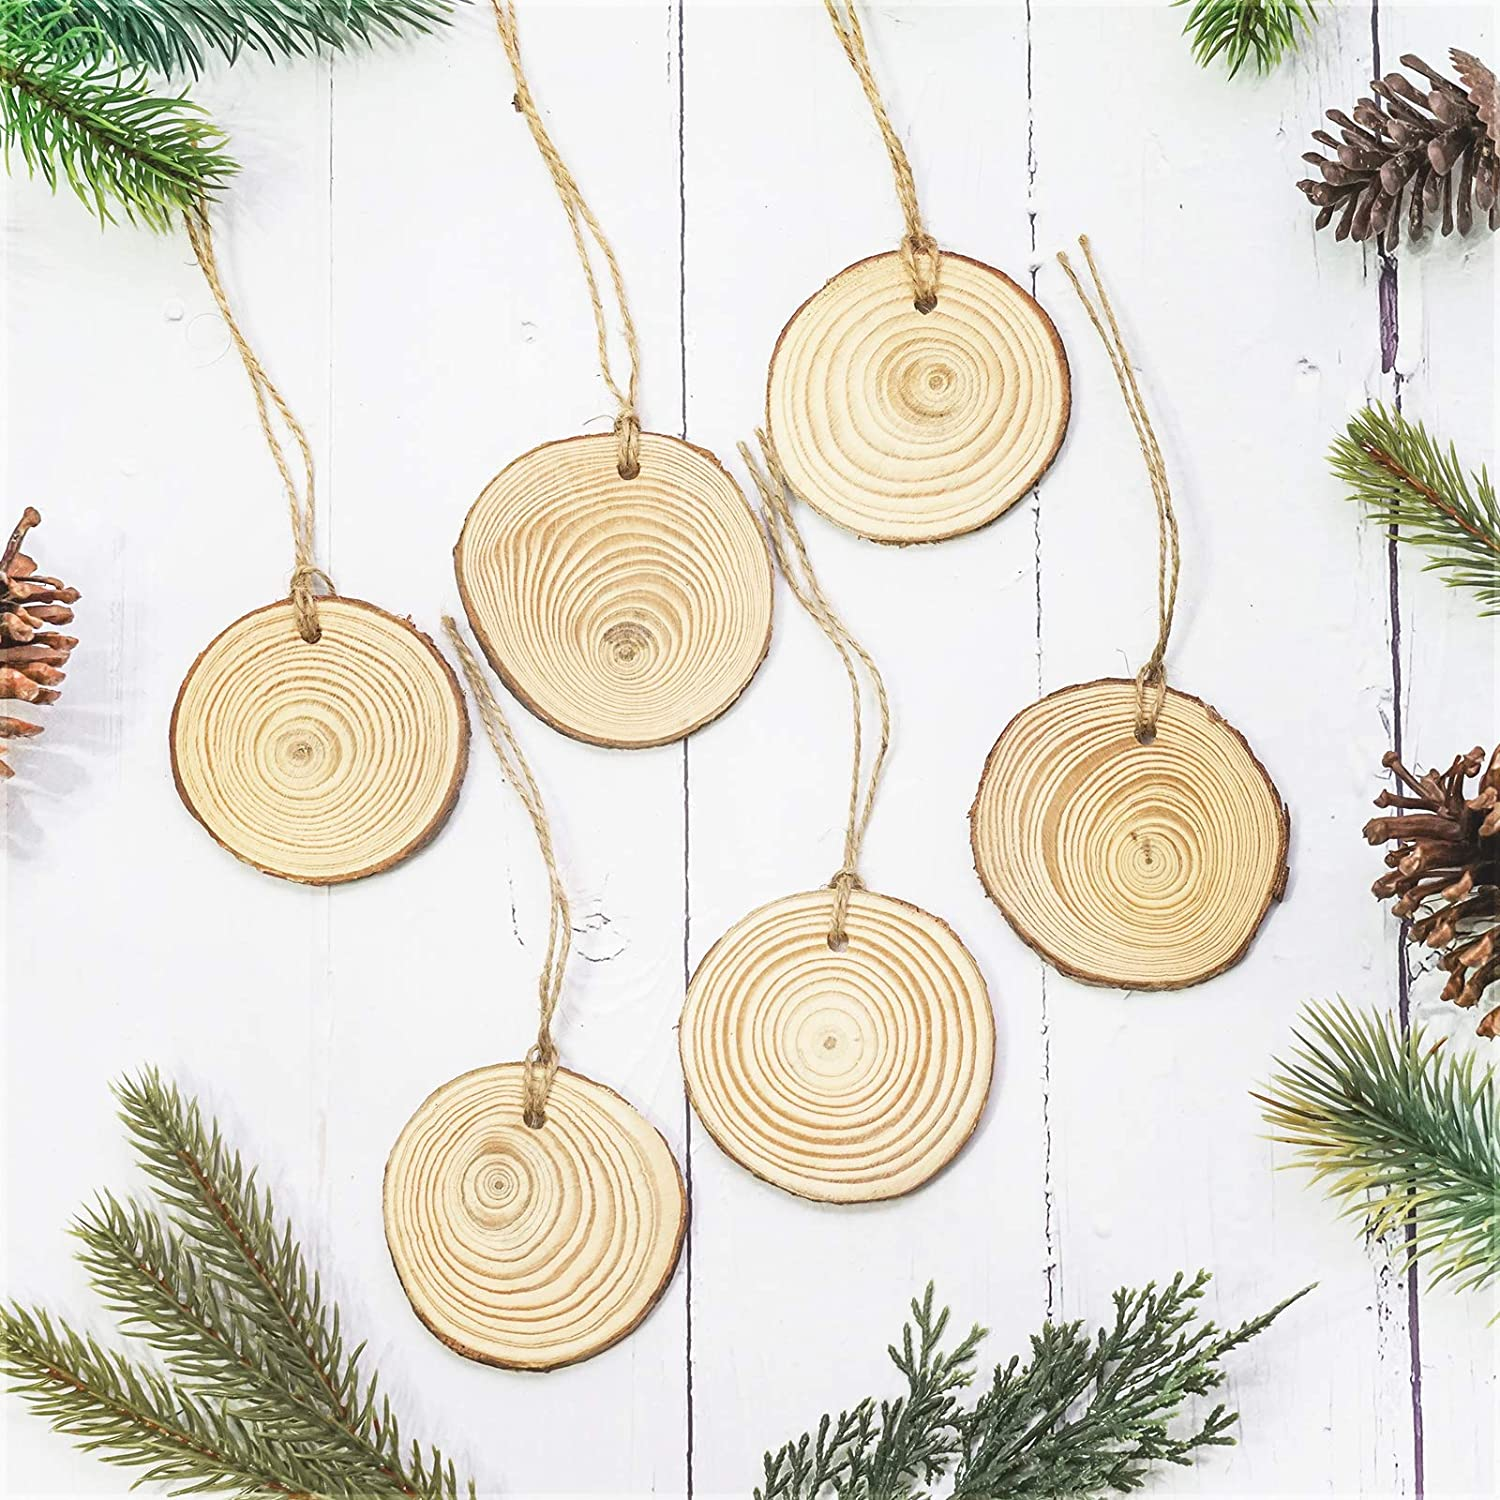 Unfinished Pre-Drilled Wooden Circles with Rope Natural Wood Slices 30-Piece 2.4-2.8 Inches Craft Wood Great for Arts and Crafts DIY Christmas Ornaments